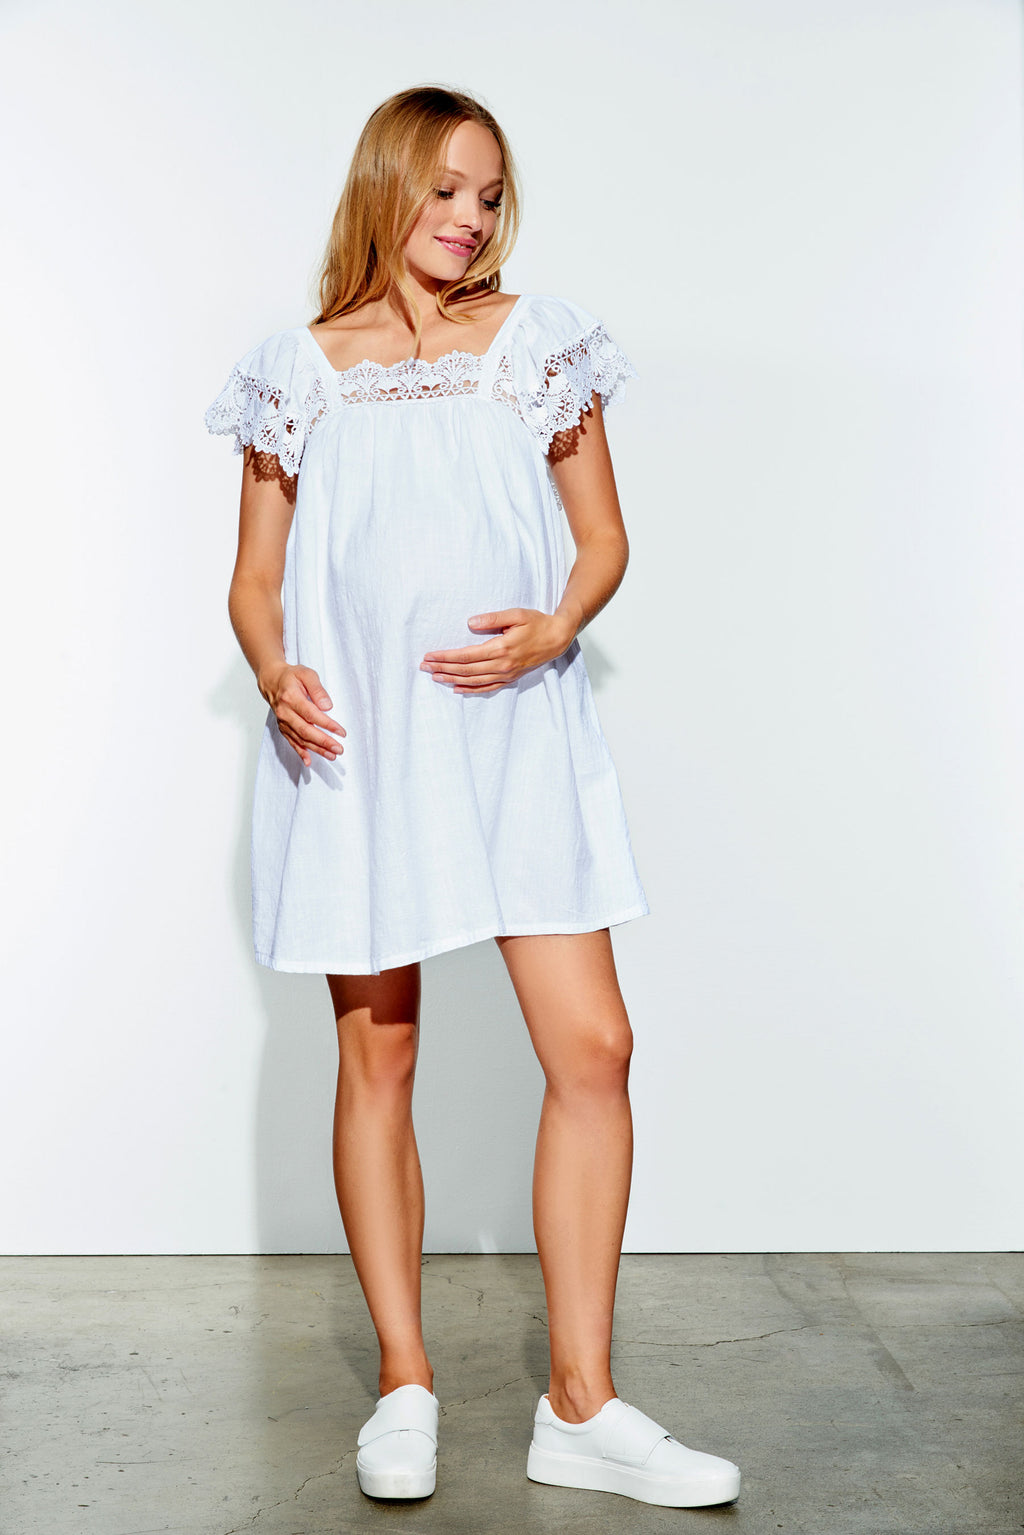 Babydoll Crochet Maternity Dress by MA - Seven Women Maternity